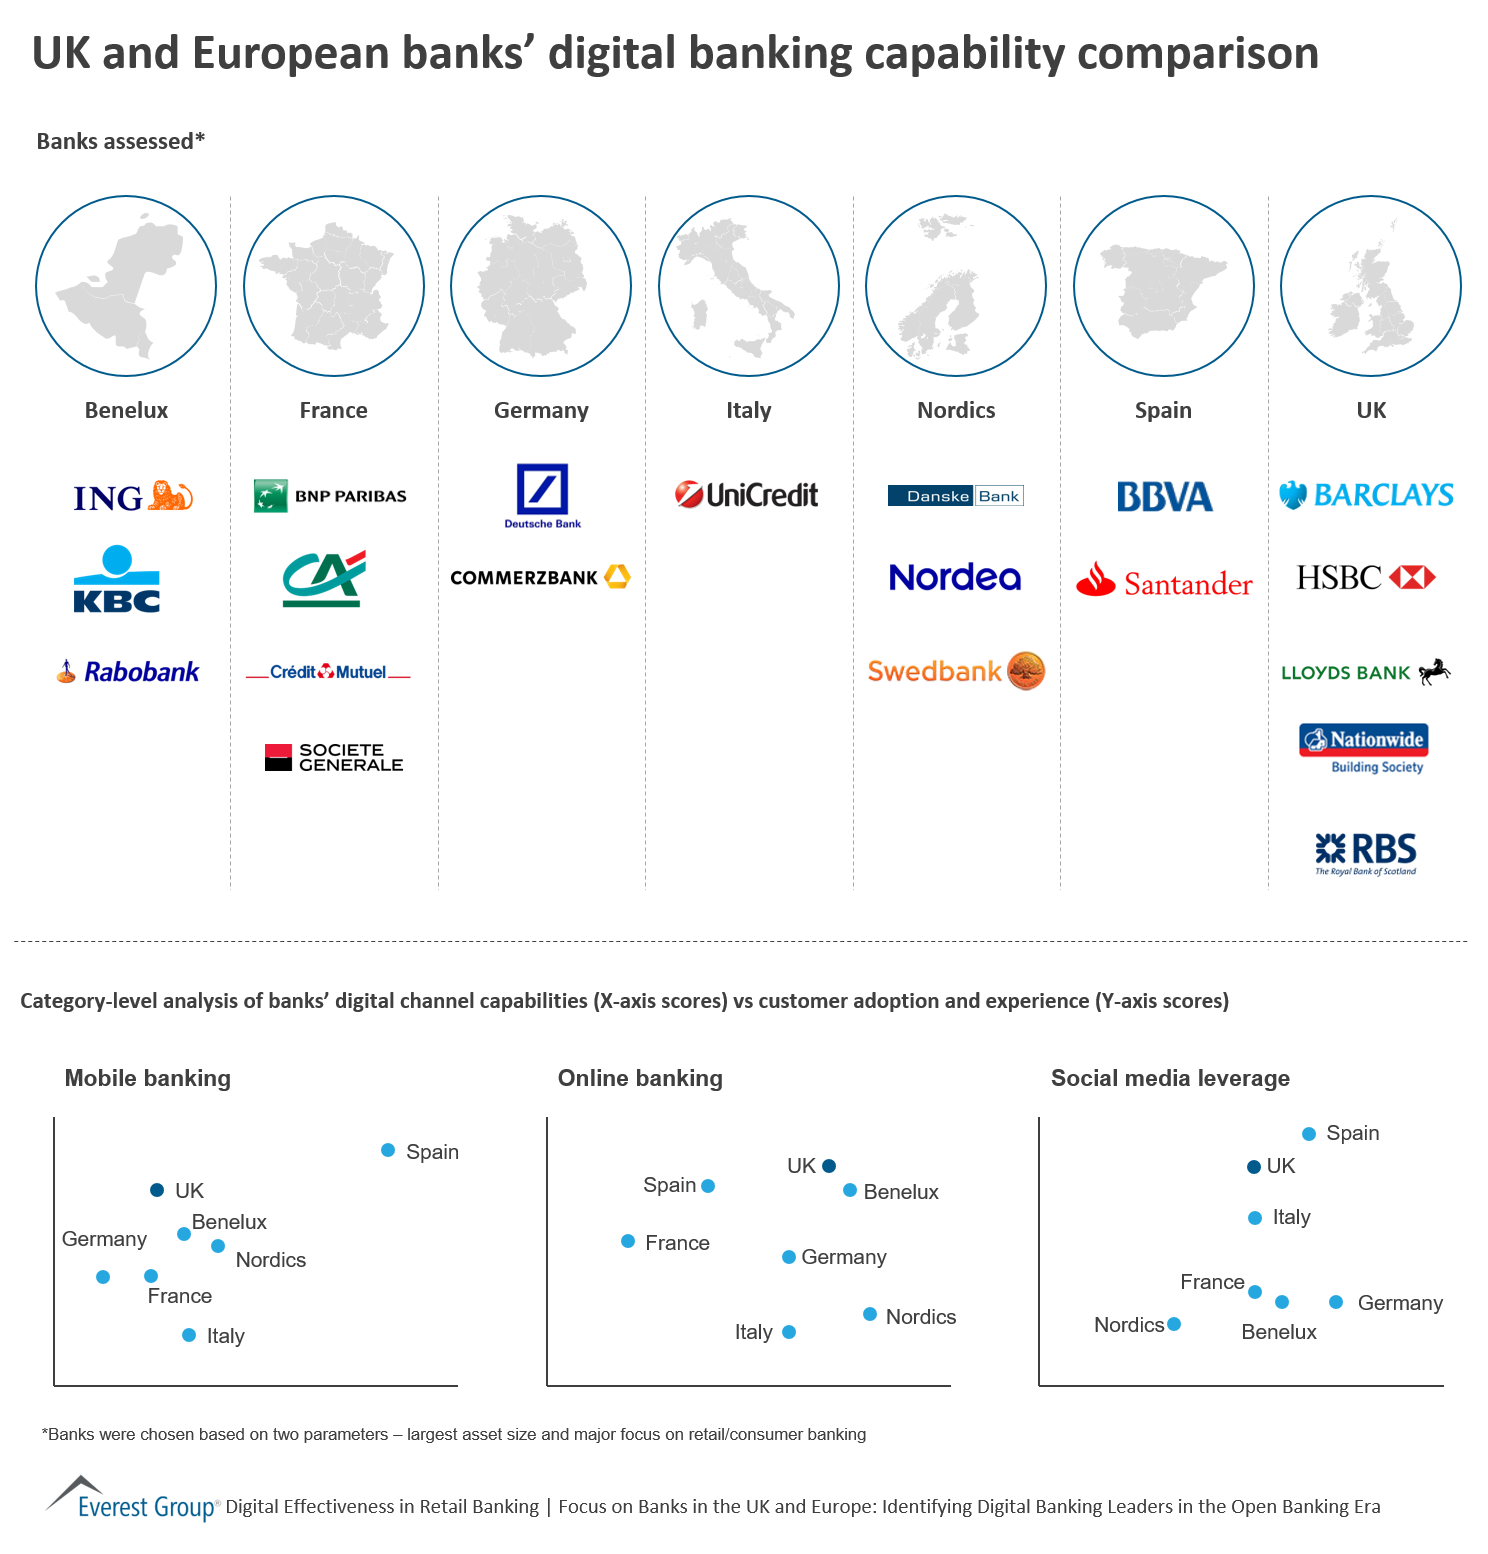 UK and European banks' digital banking capability comparison